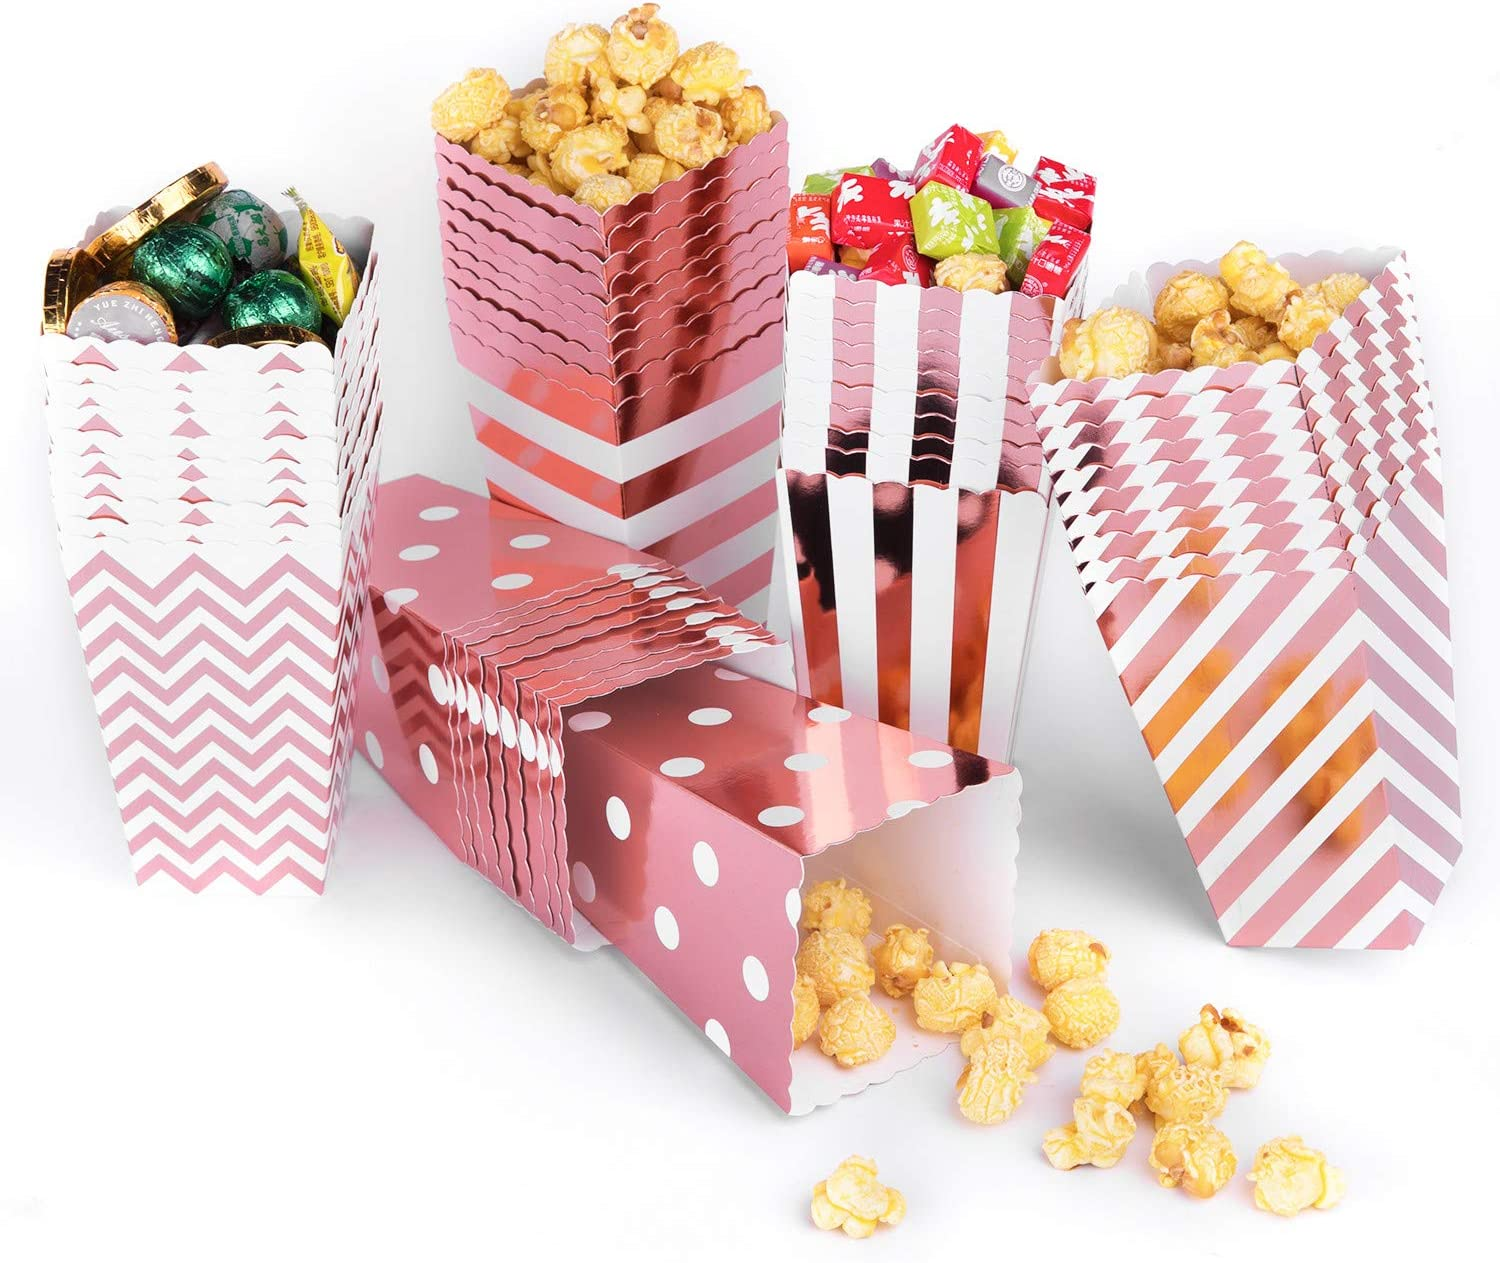 Rose gold Popcorn Boxes Bags,50PCS Popcorn Boxes Cardboard Candy Container for Party Snacks